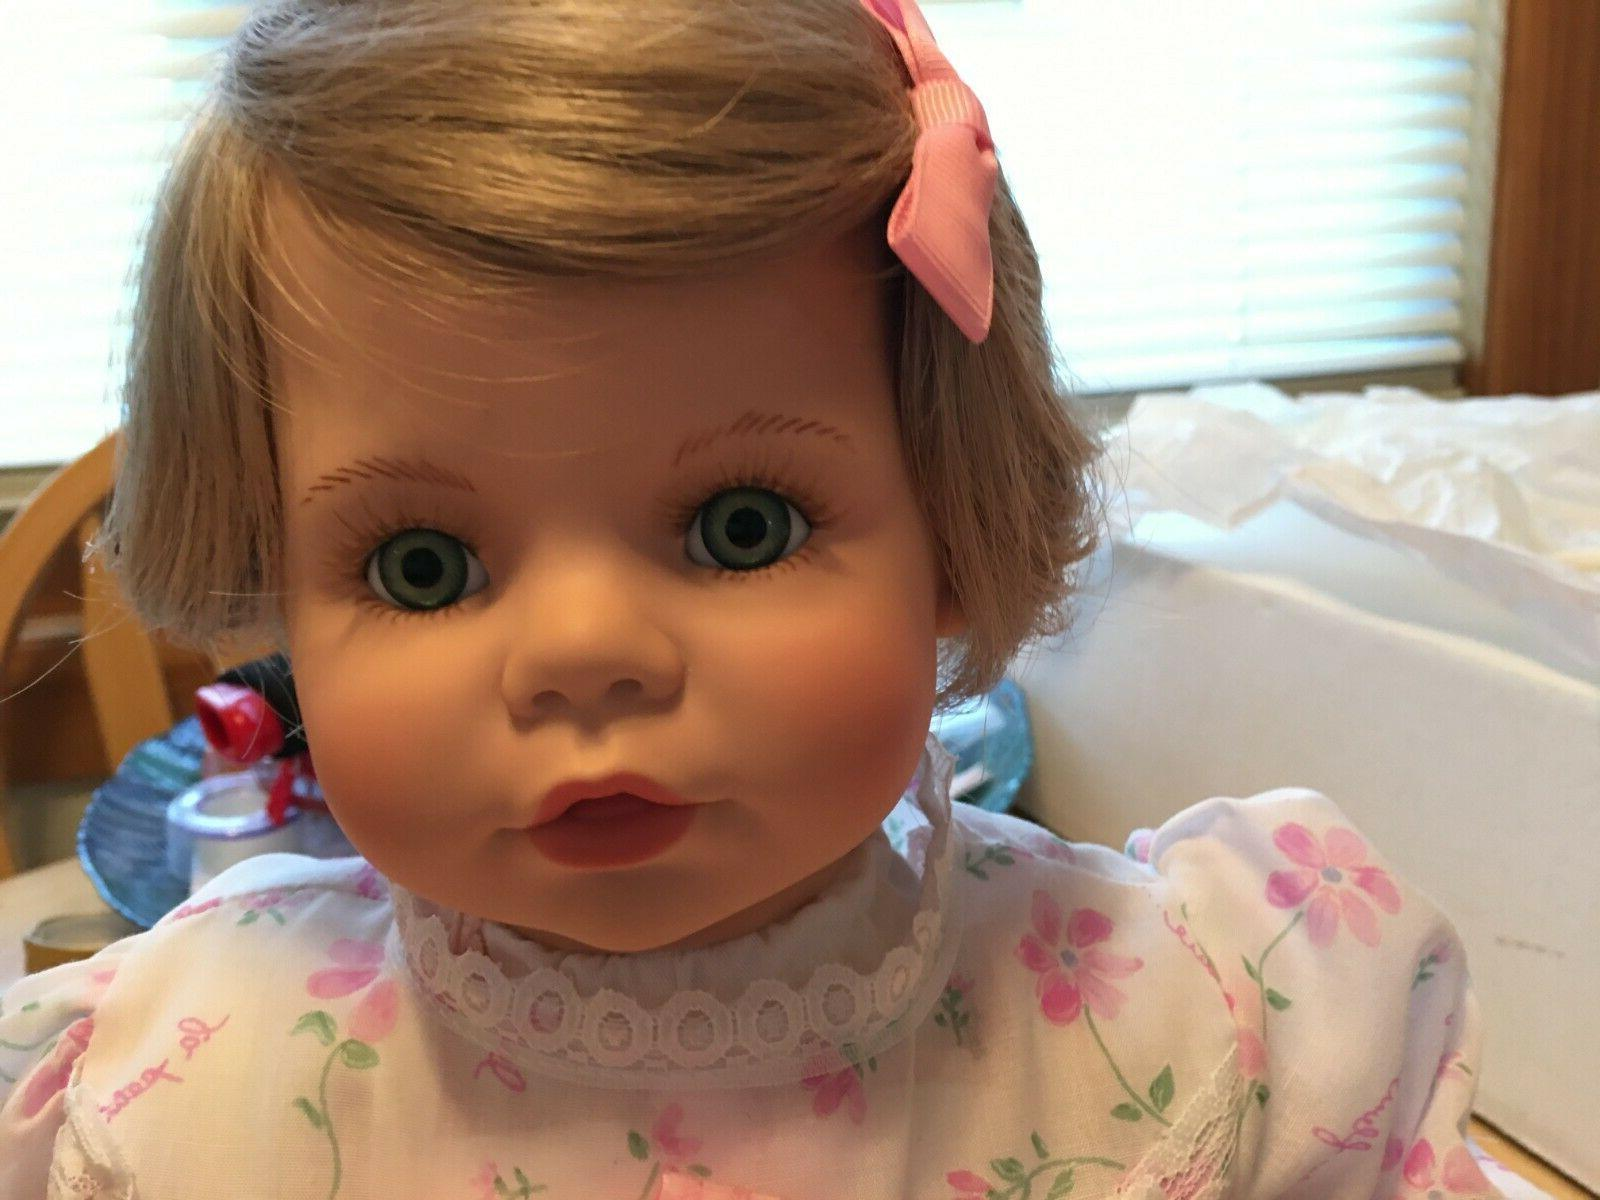 SUSAN REBORN DOLL BLONDE LIGHT